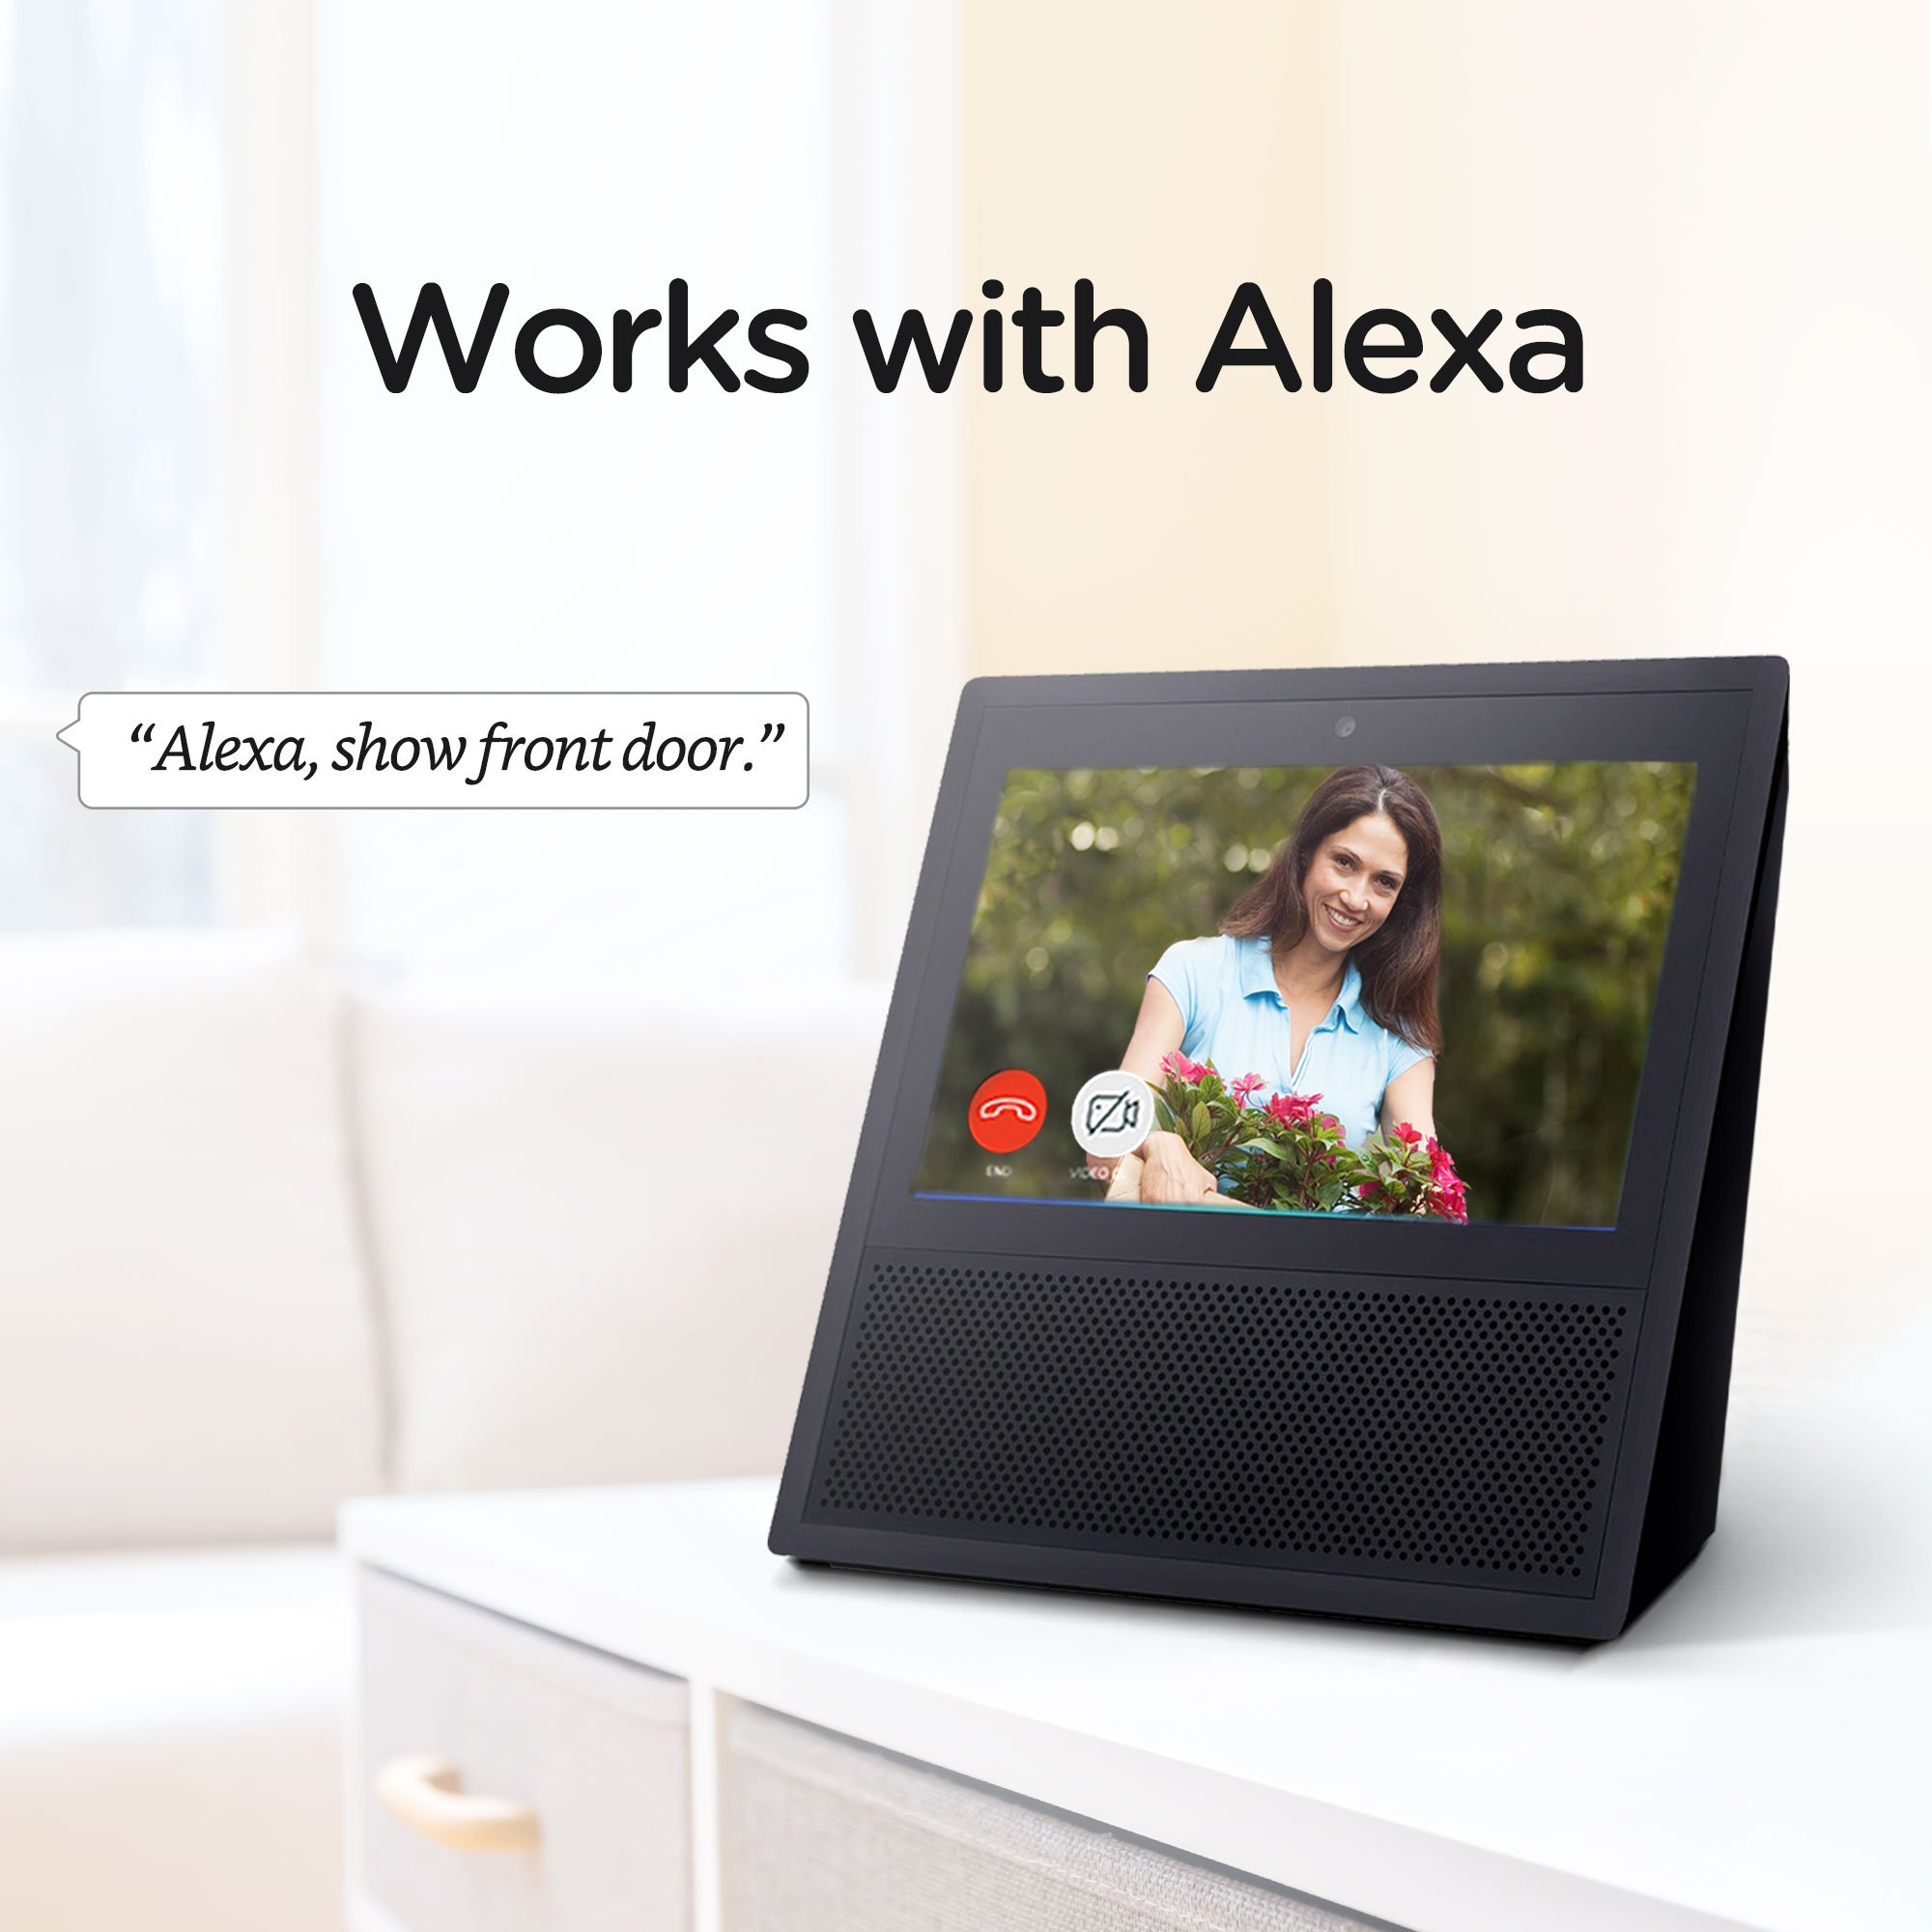 Zmodo Greet Select WiFi Video Doorbell, 1080p Full HD Camera, Free 30-Day Cloud Service, Works with Alexa by Zmodo (Image #4)